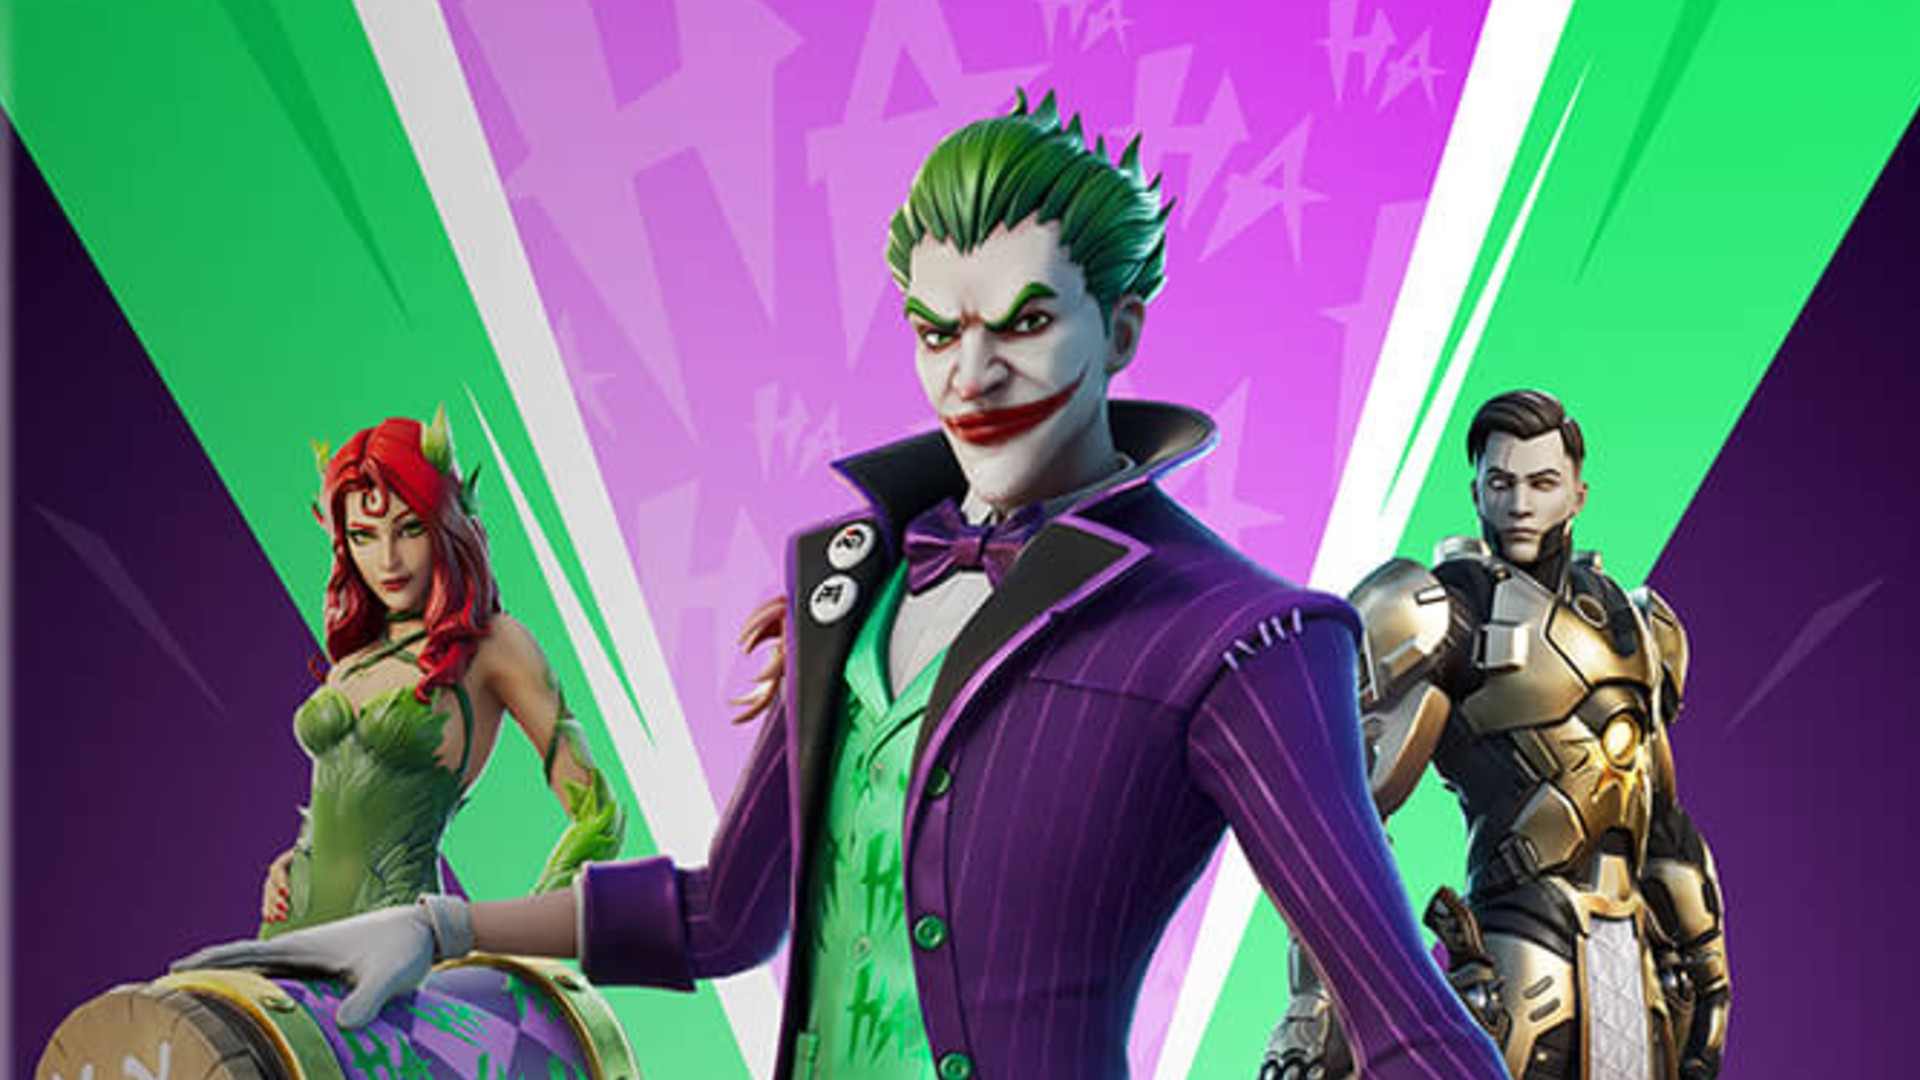 Fortnite Item Shop Joker And Poison Ivy Debut In This Holiday Bundle Pc Gamer